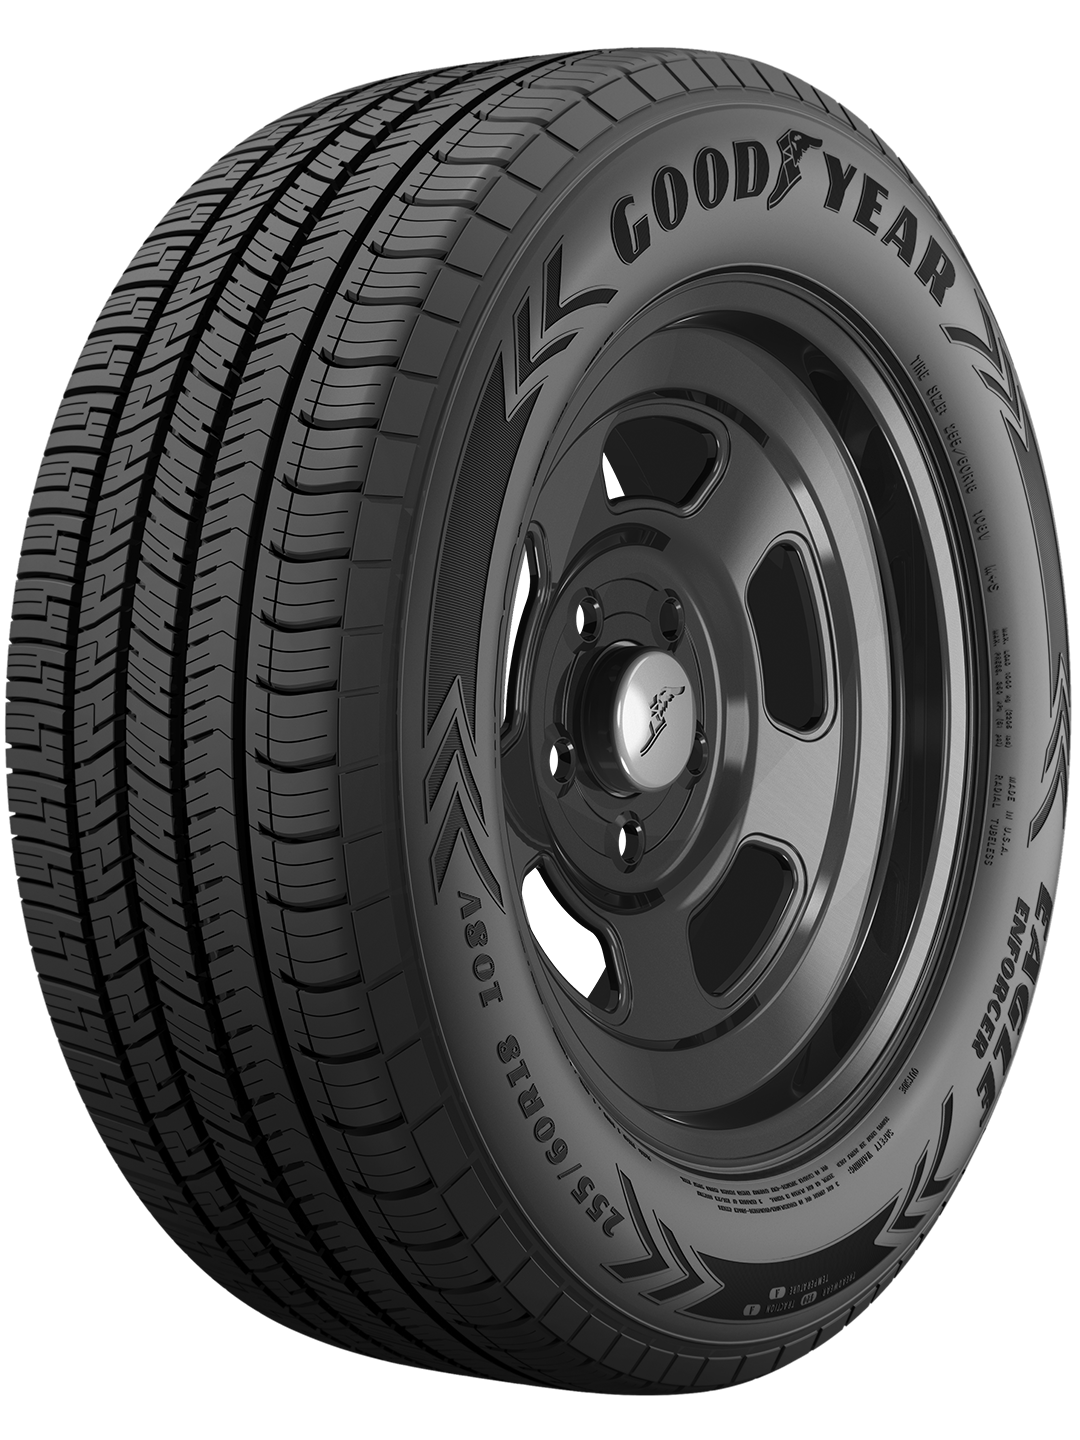 Tire Puncture Repair >> Police Tires | Goodyear Government Sales